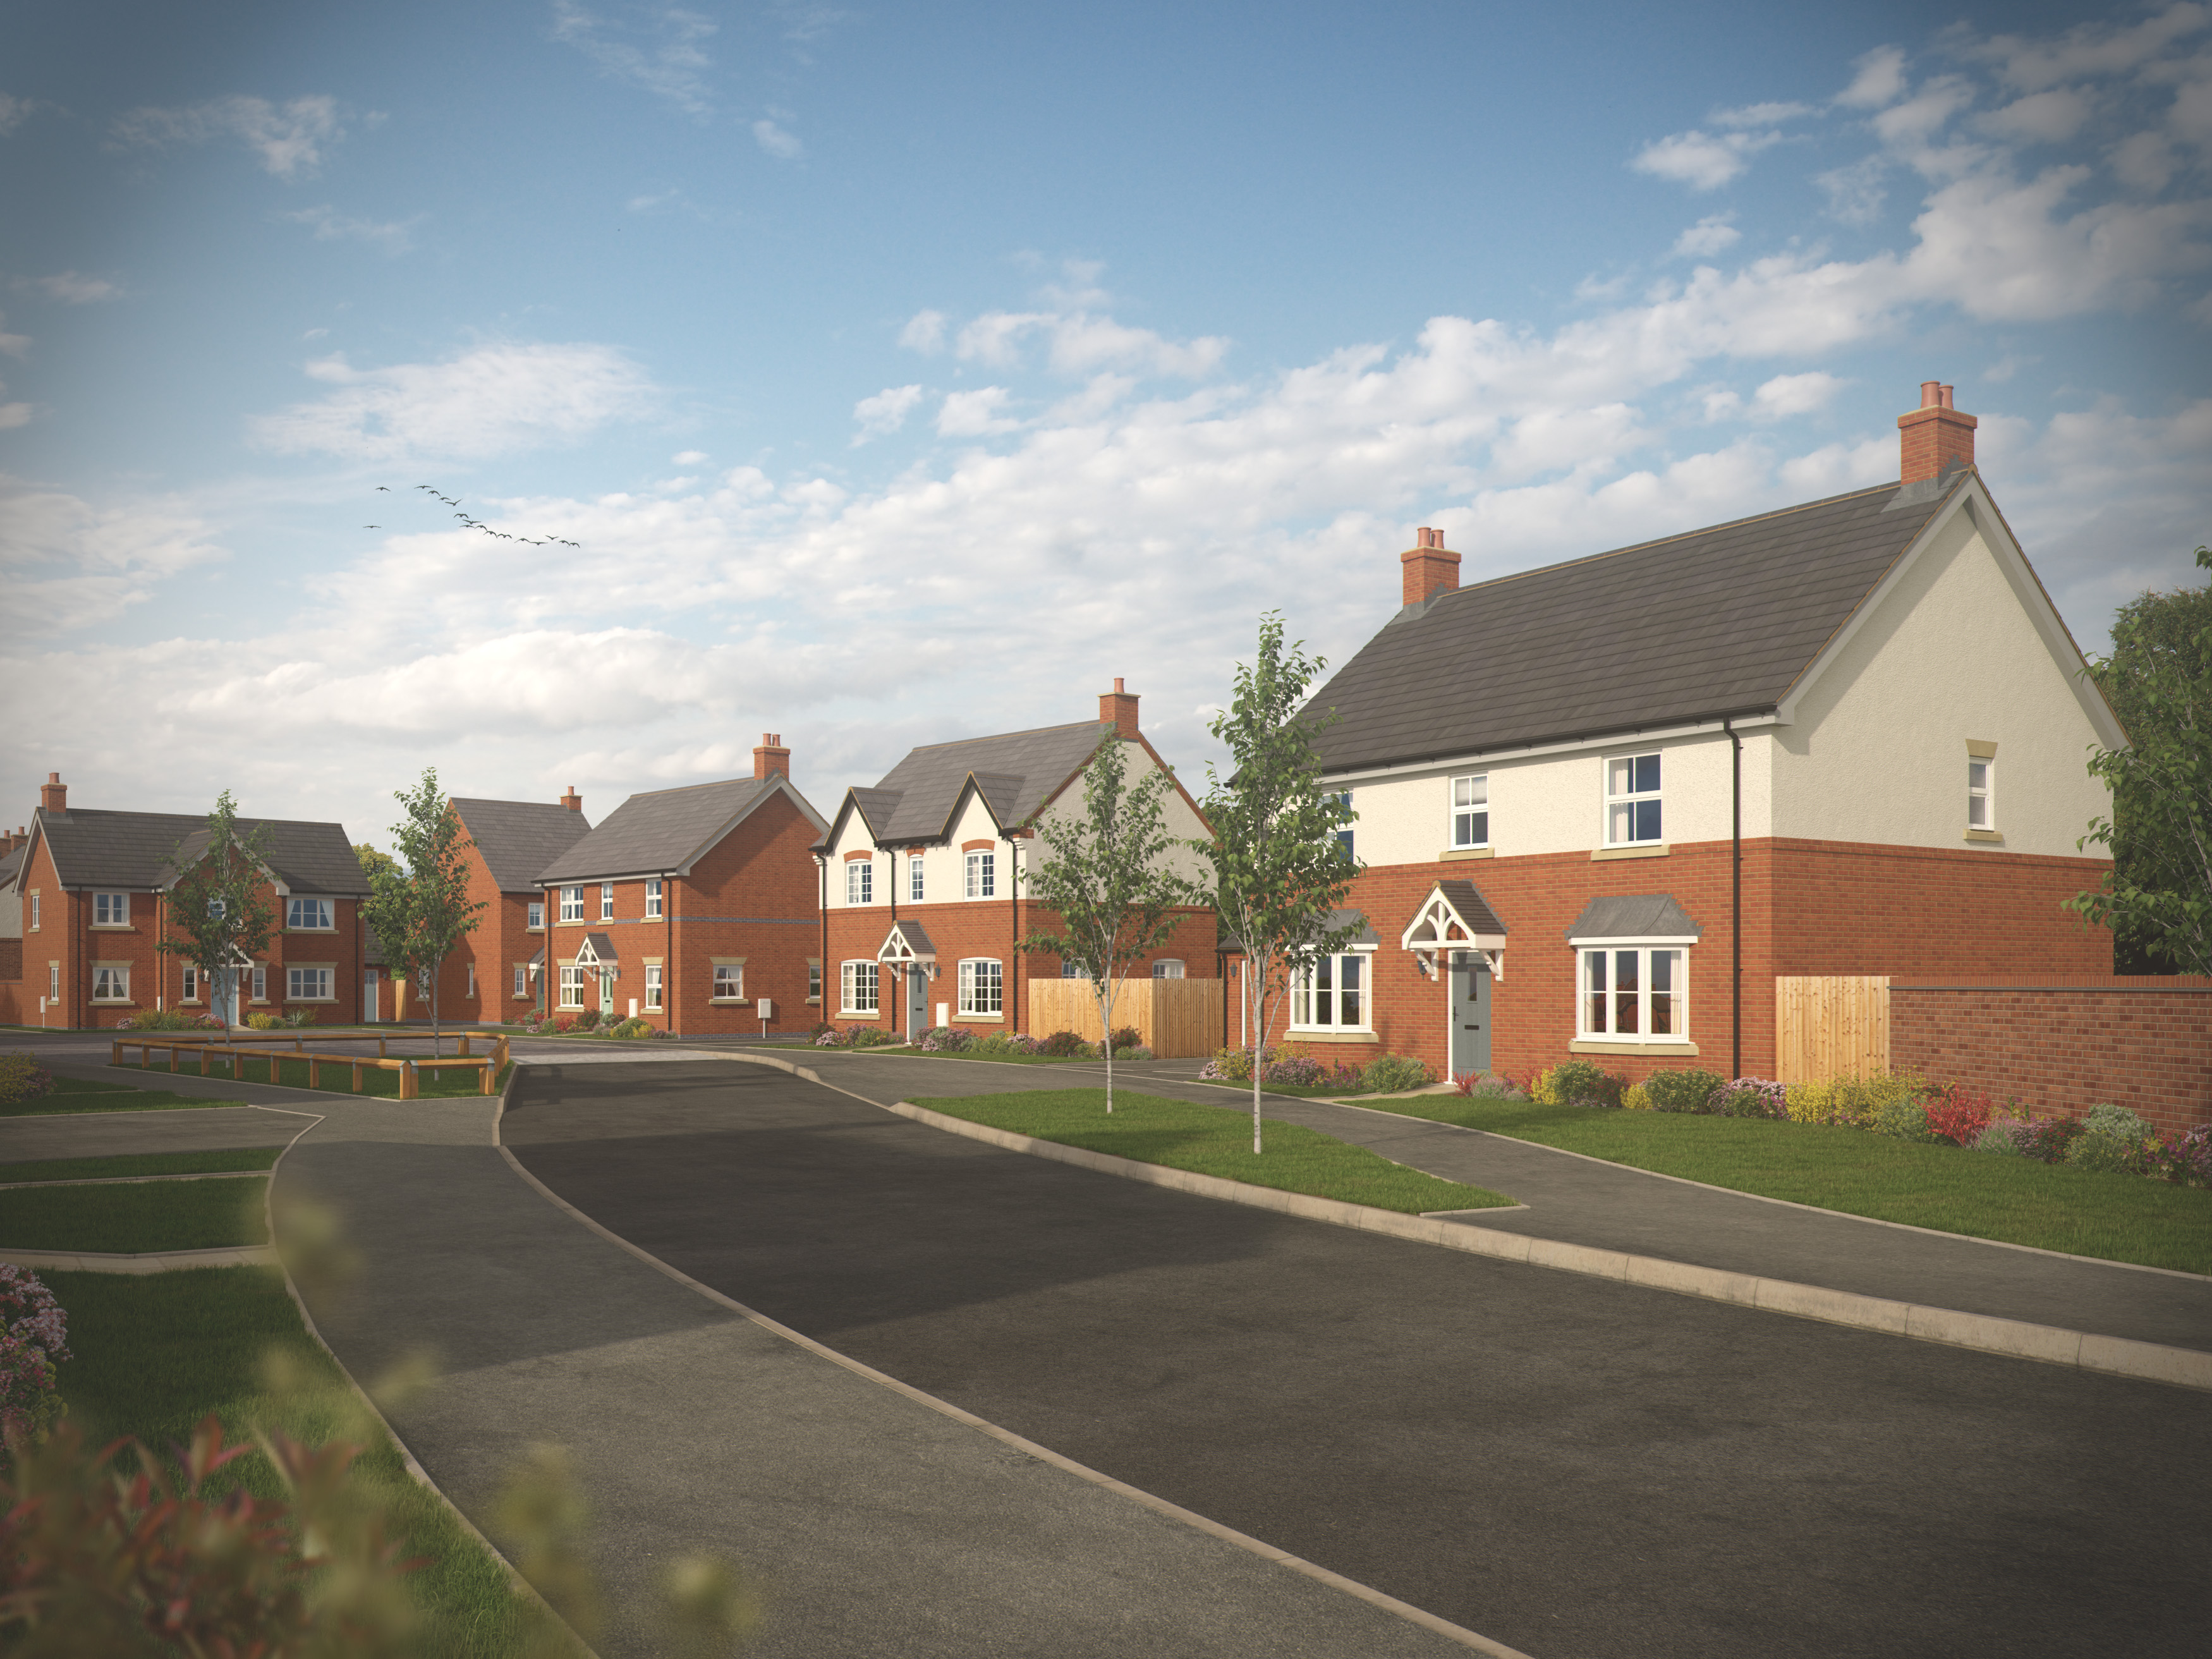 Peveril Homes' Chamberlain Place, Measham, welcoming visitors from Saturday 9th November